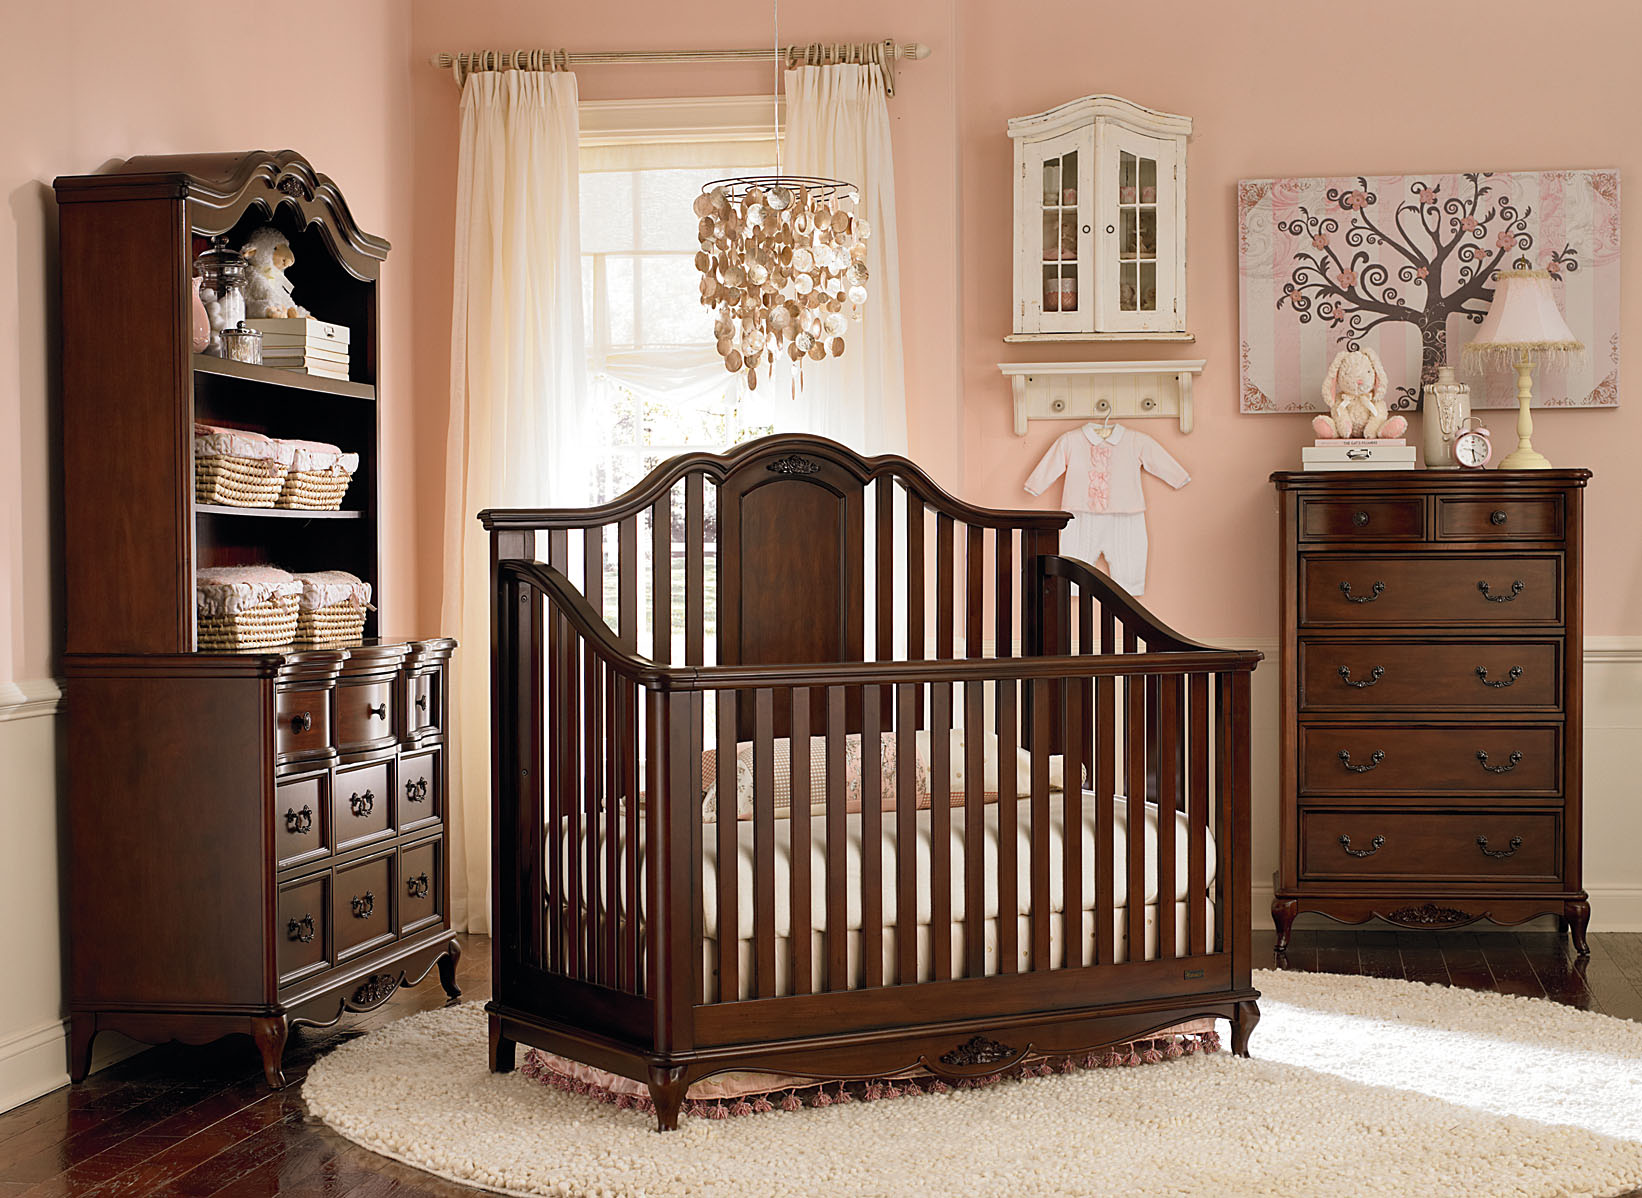 Where Can I Buy Furniture Online